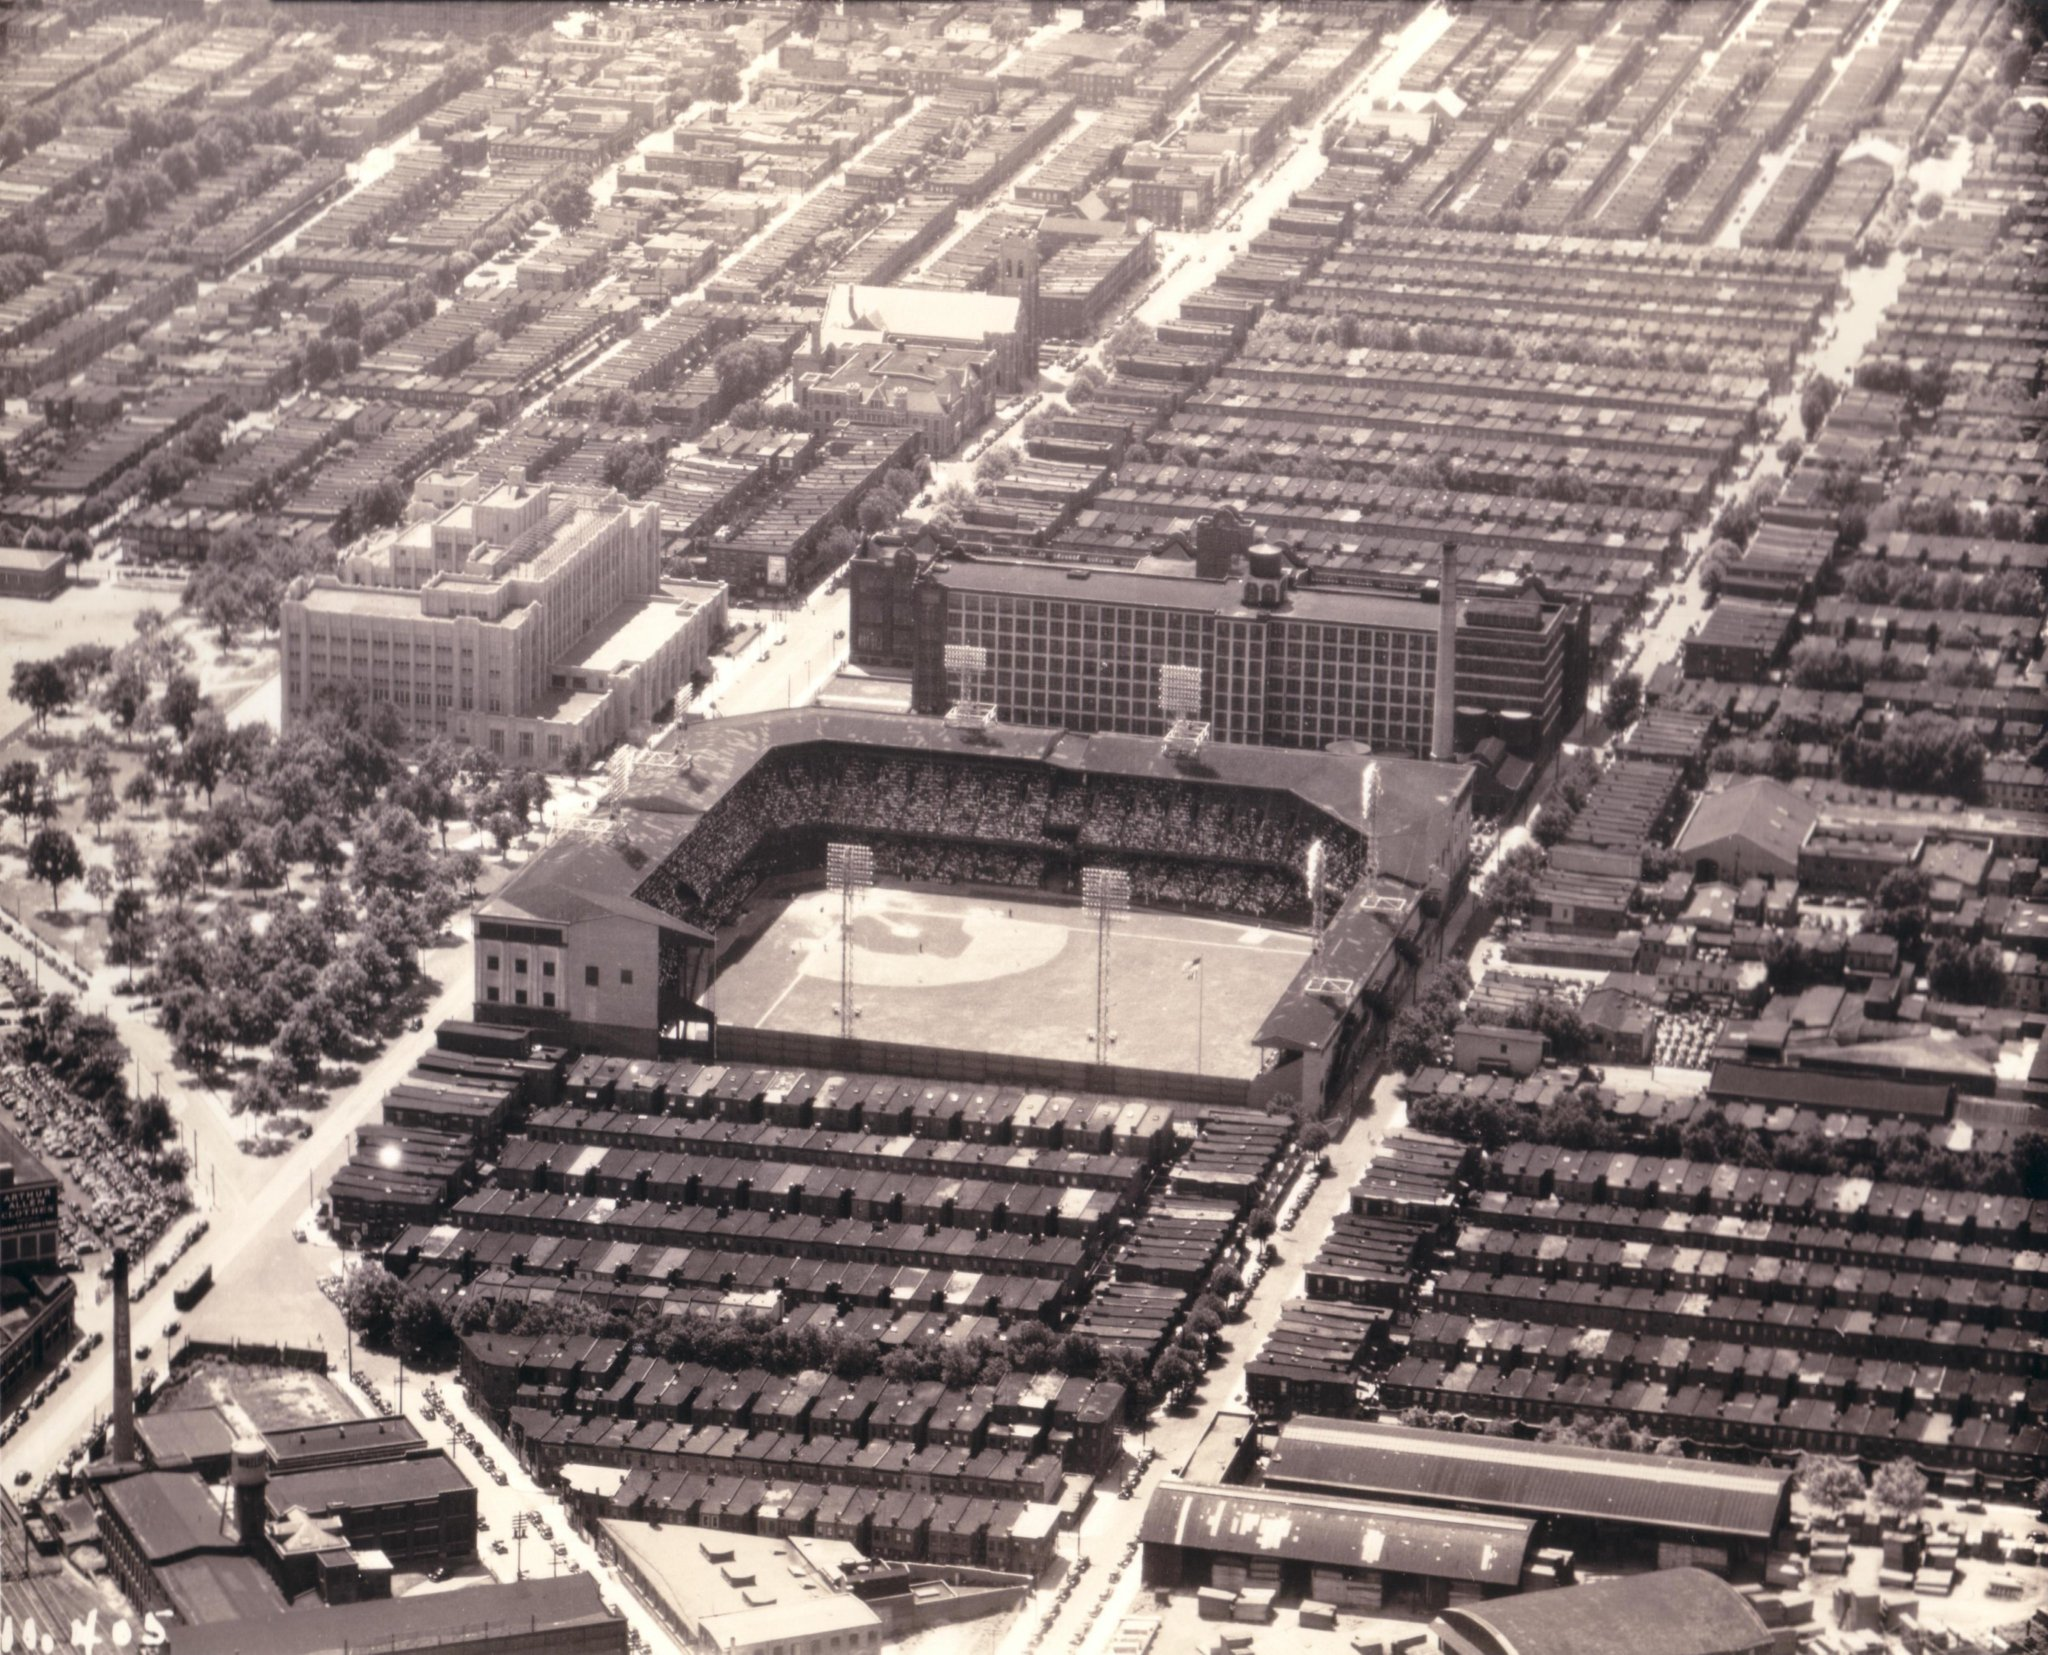 Shibe Park, Philadelphia, June 1939 - Just a month earlier light towers were installed and A's had first night game. Connie Mack had to try something different, from 1934 to 1938 his club drew an avg of 4,250 a home game as bad baseball and Great Depression was taking its toll https://t.co/zK2fXzjNi1